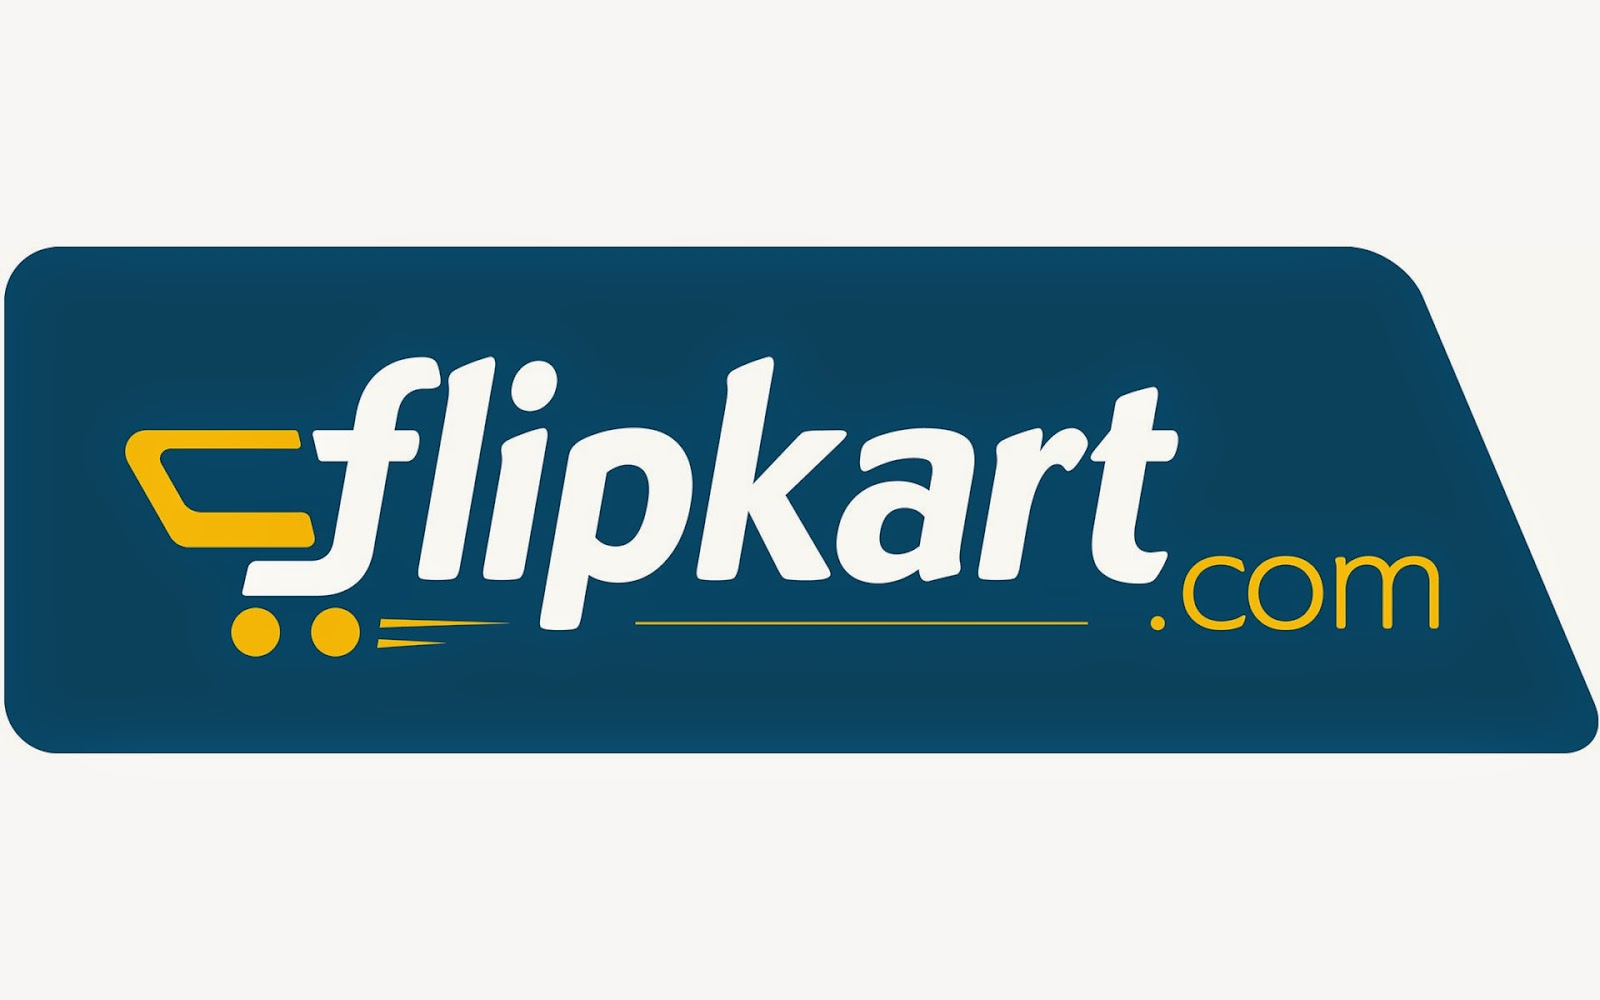 Flipkart launches online grocery store; likely to invest 1,812 crores